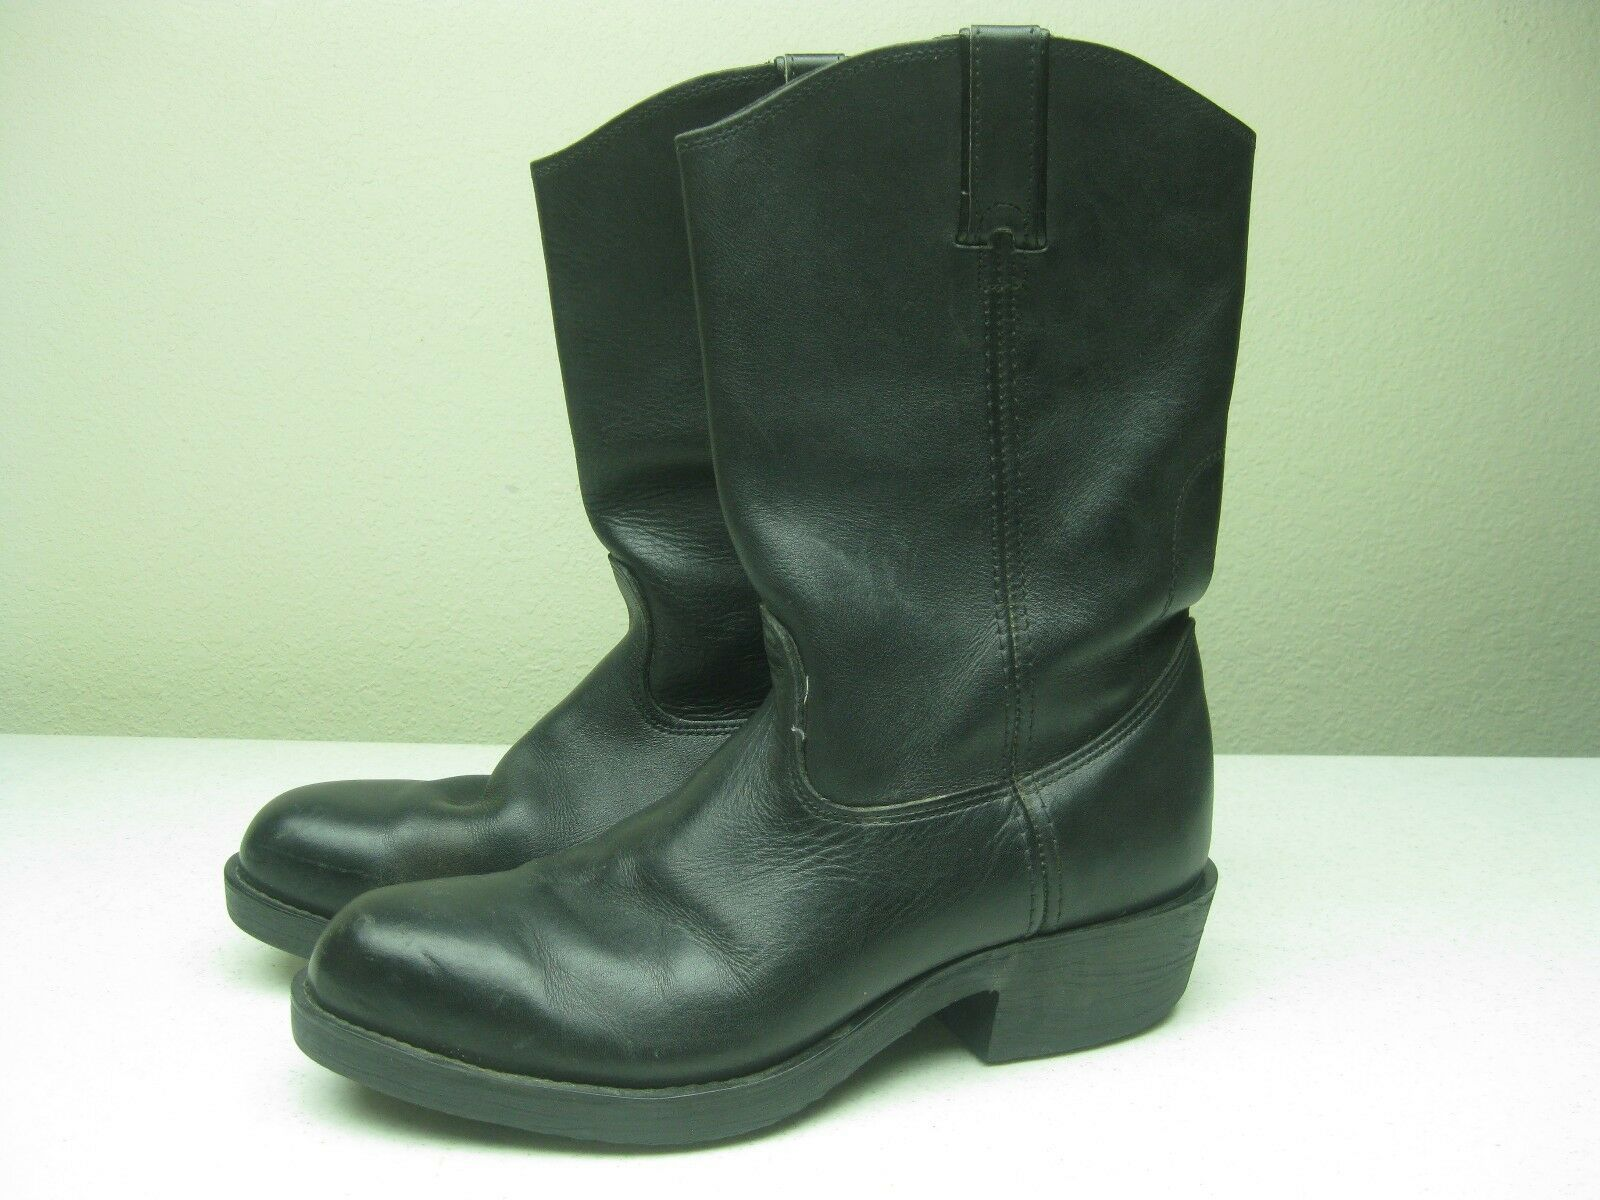 VINTAGE BLACK LEHIGH STEEL TOE MOTORCYCLE LEATHER WORK ENGINEER BIKER BOOTS 9W